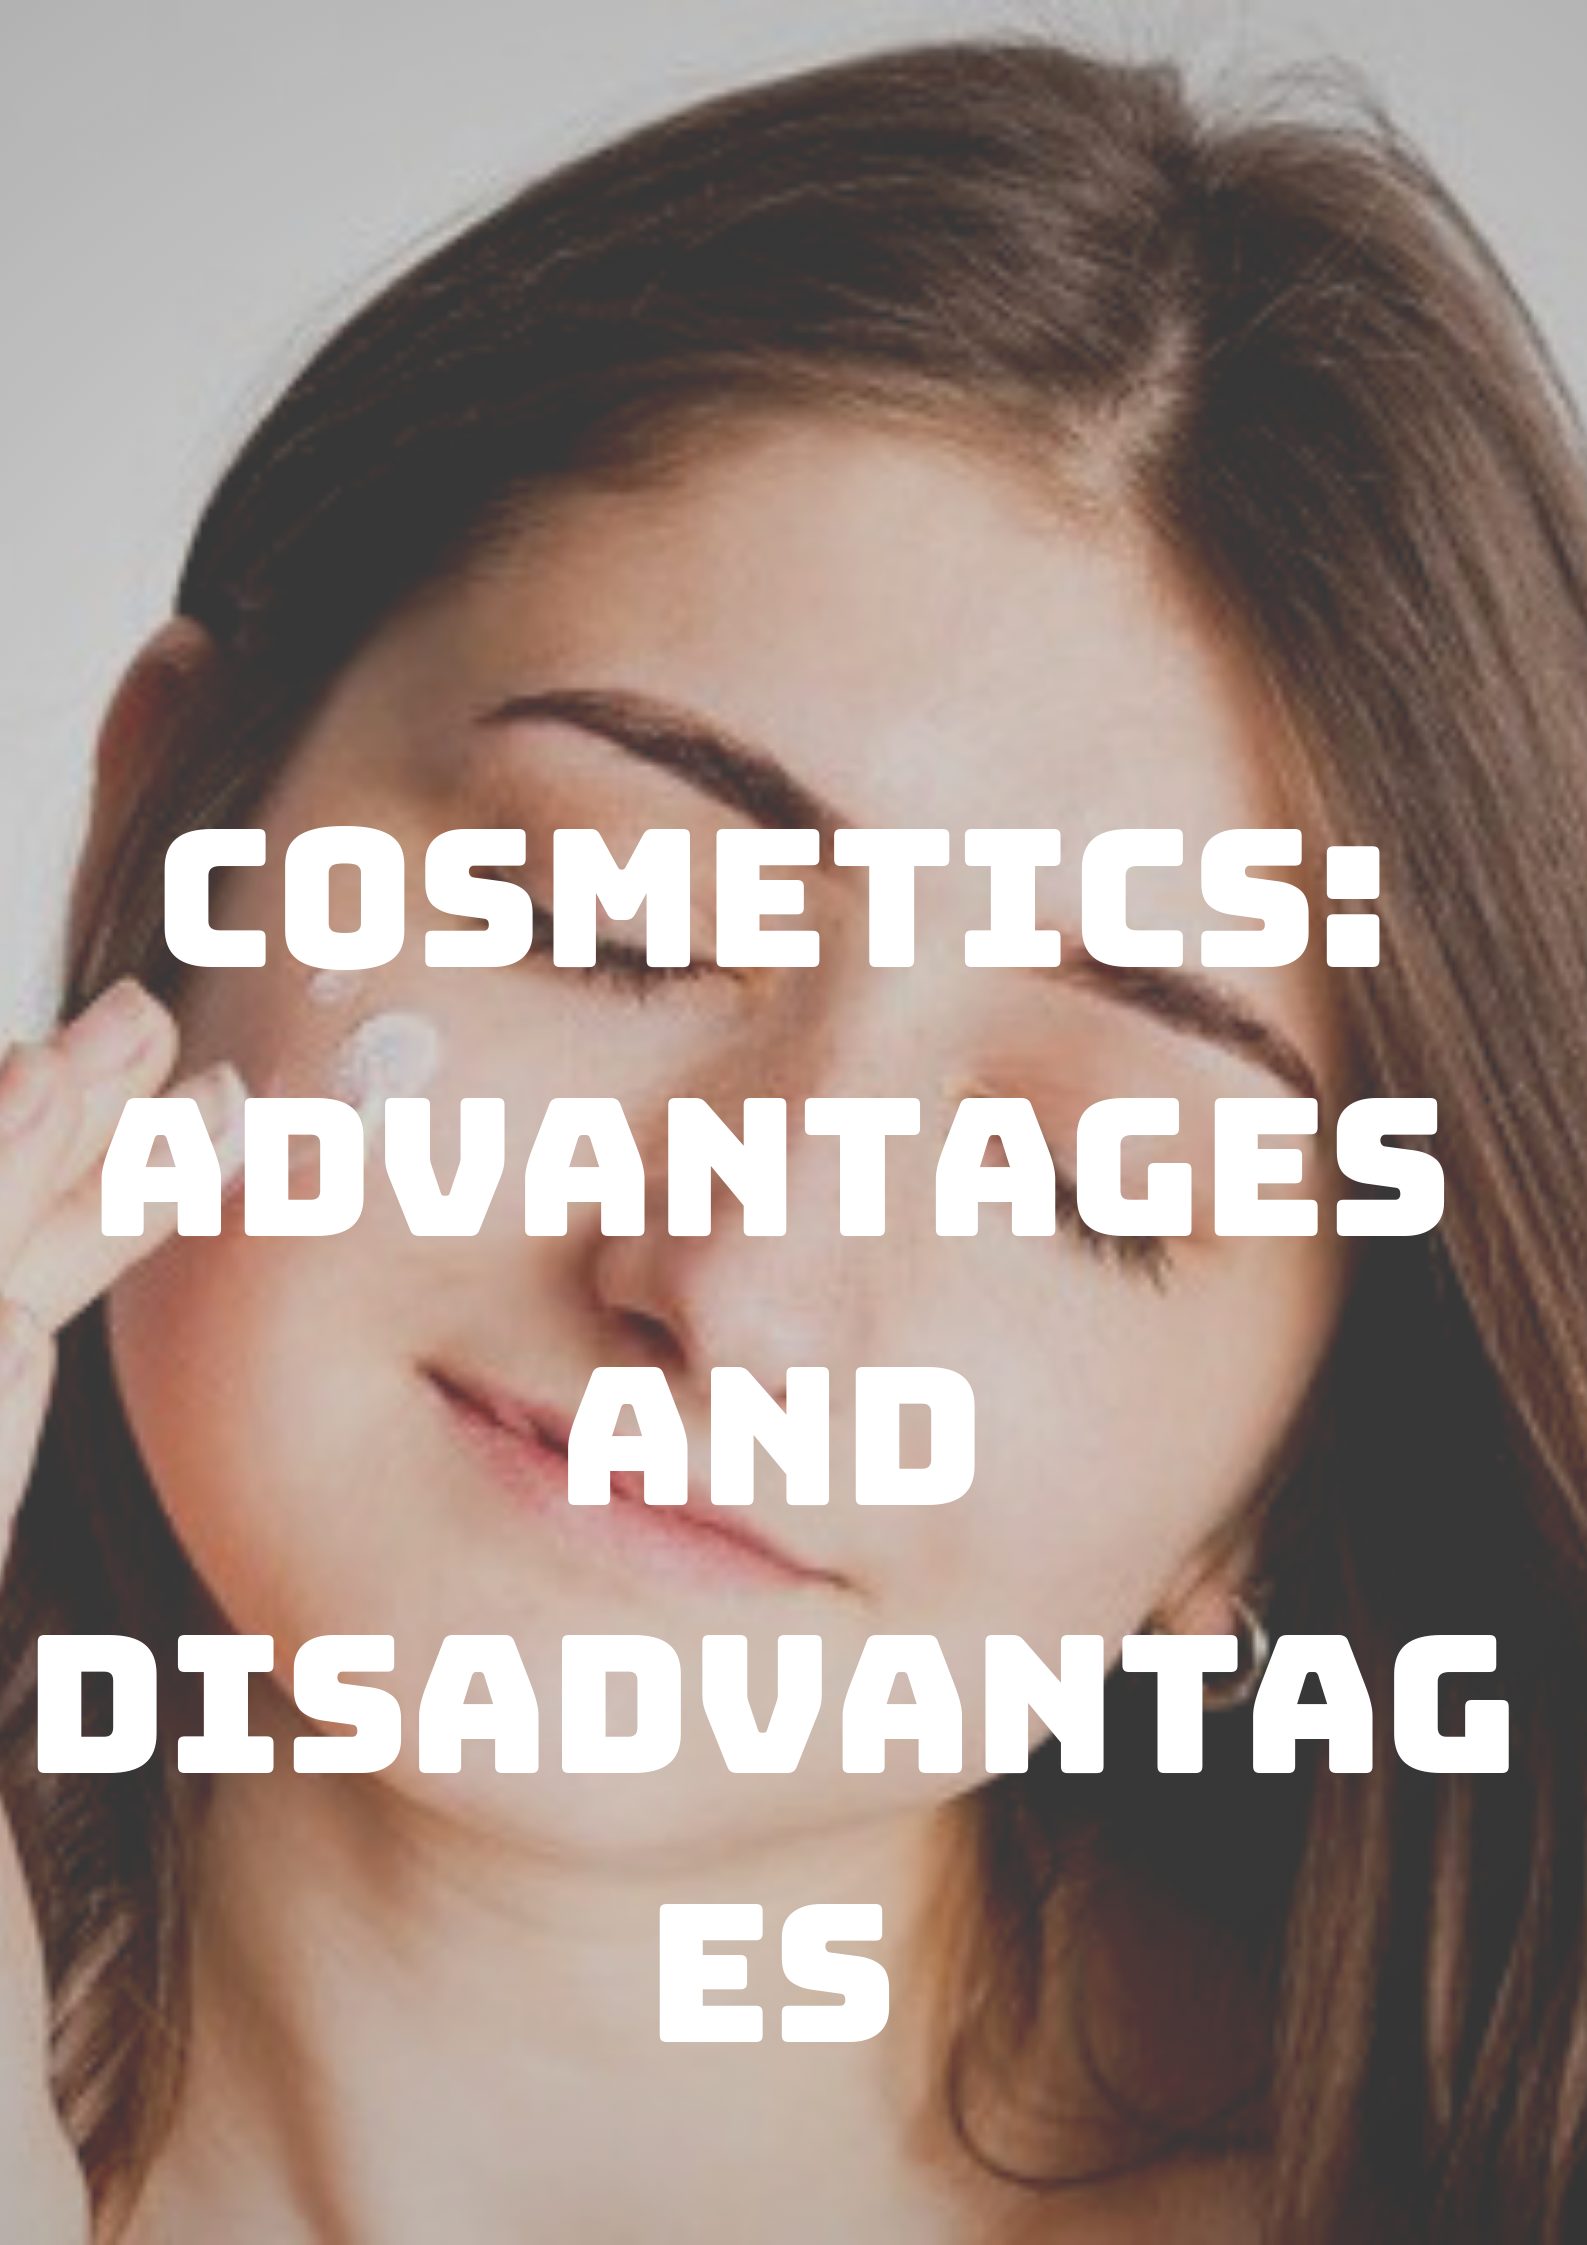 Cosmetics: Advantages and Disadvantages Photo